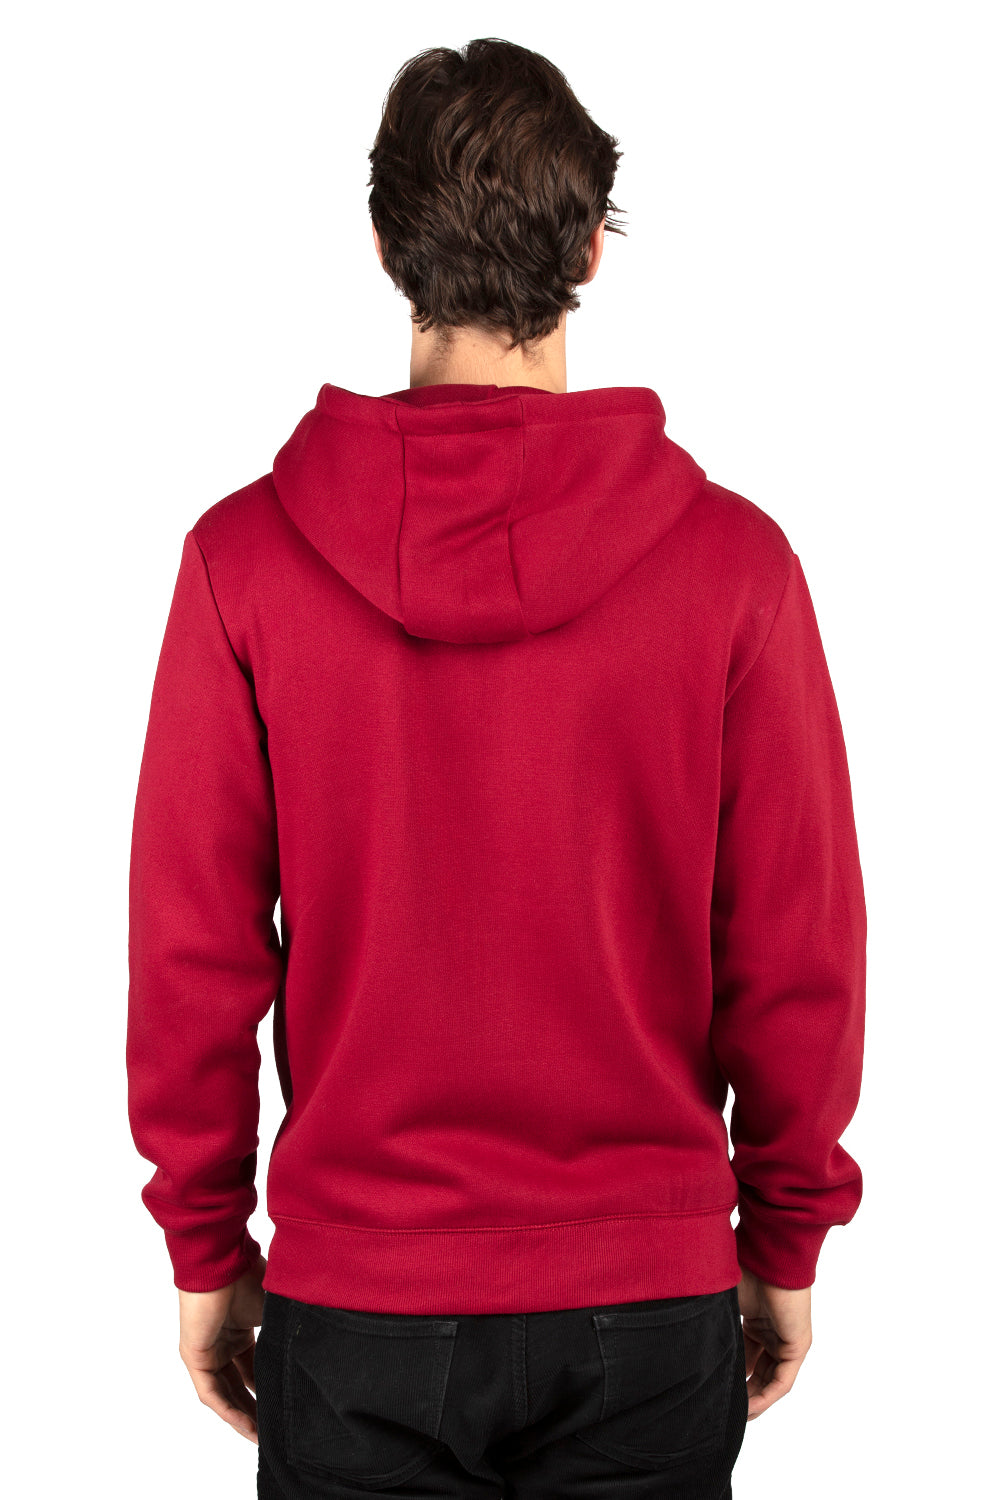 Threadfast Apparel 320Z Mens Ultimate Fleece Full Zip Hooded Sweatshirt Hoodie Burgundy Back